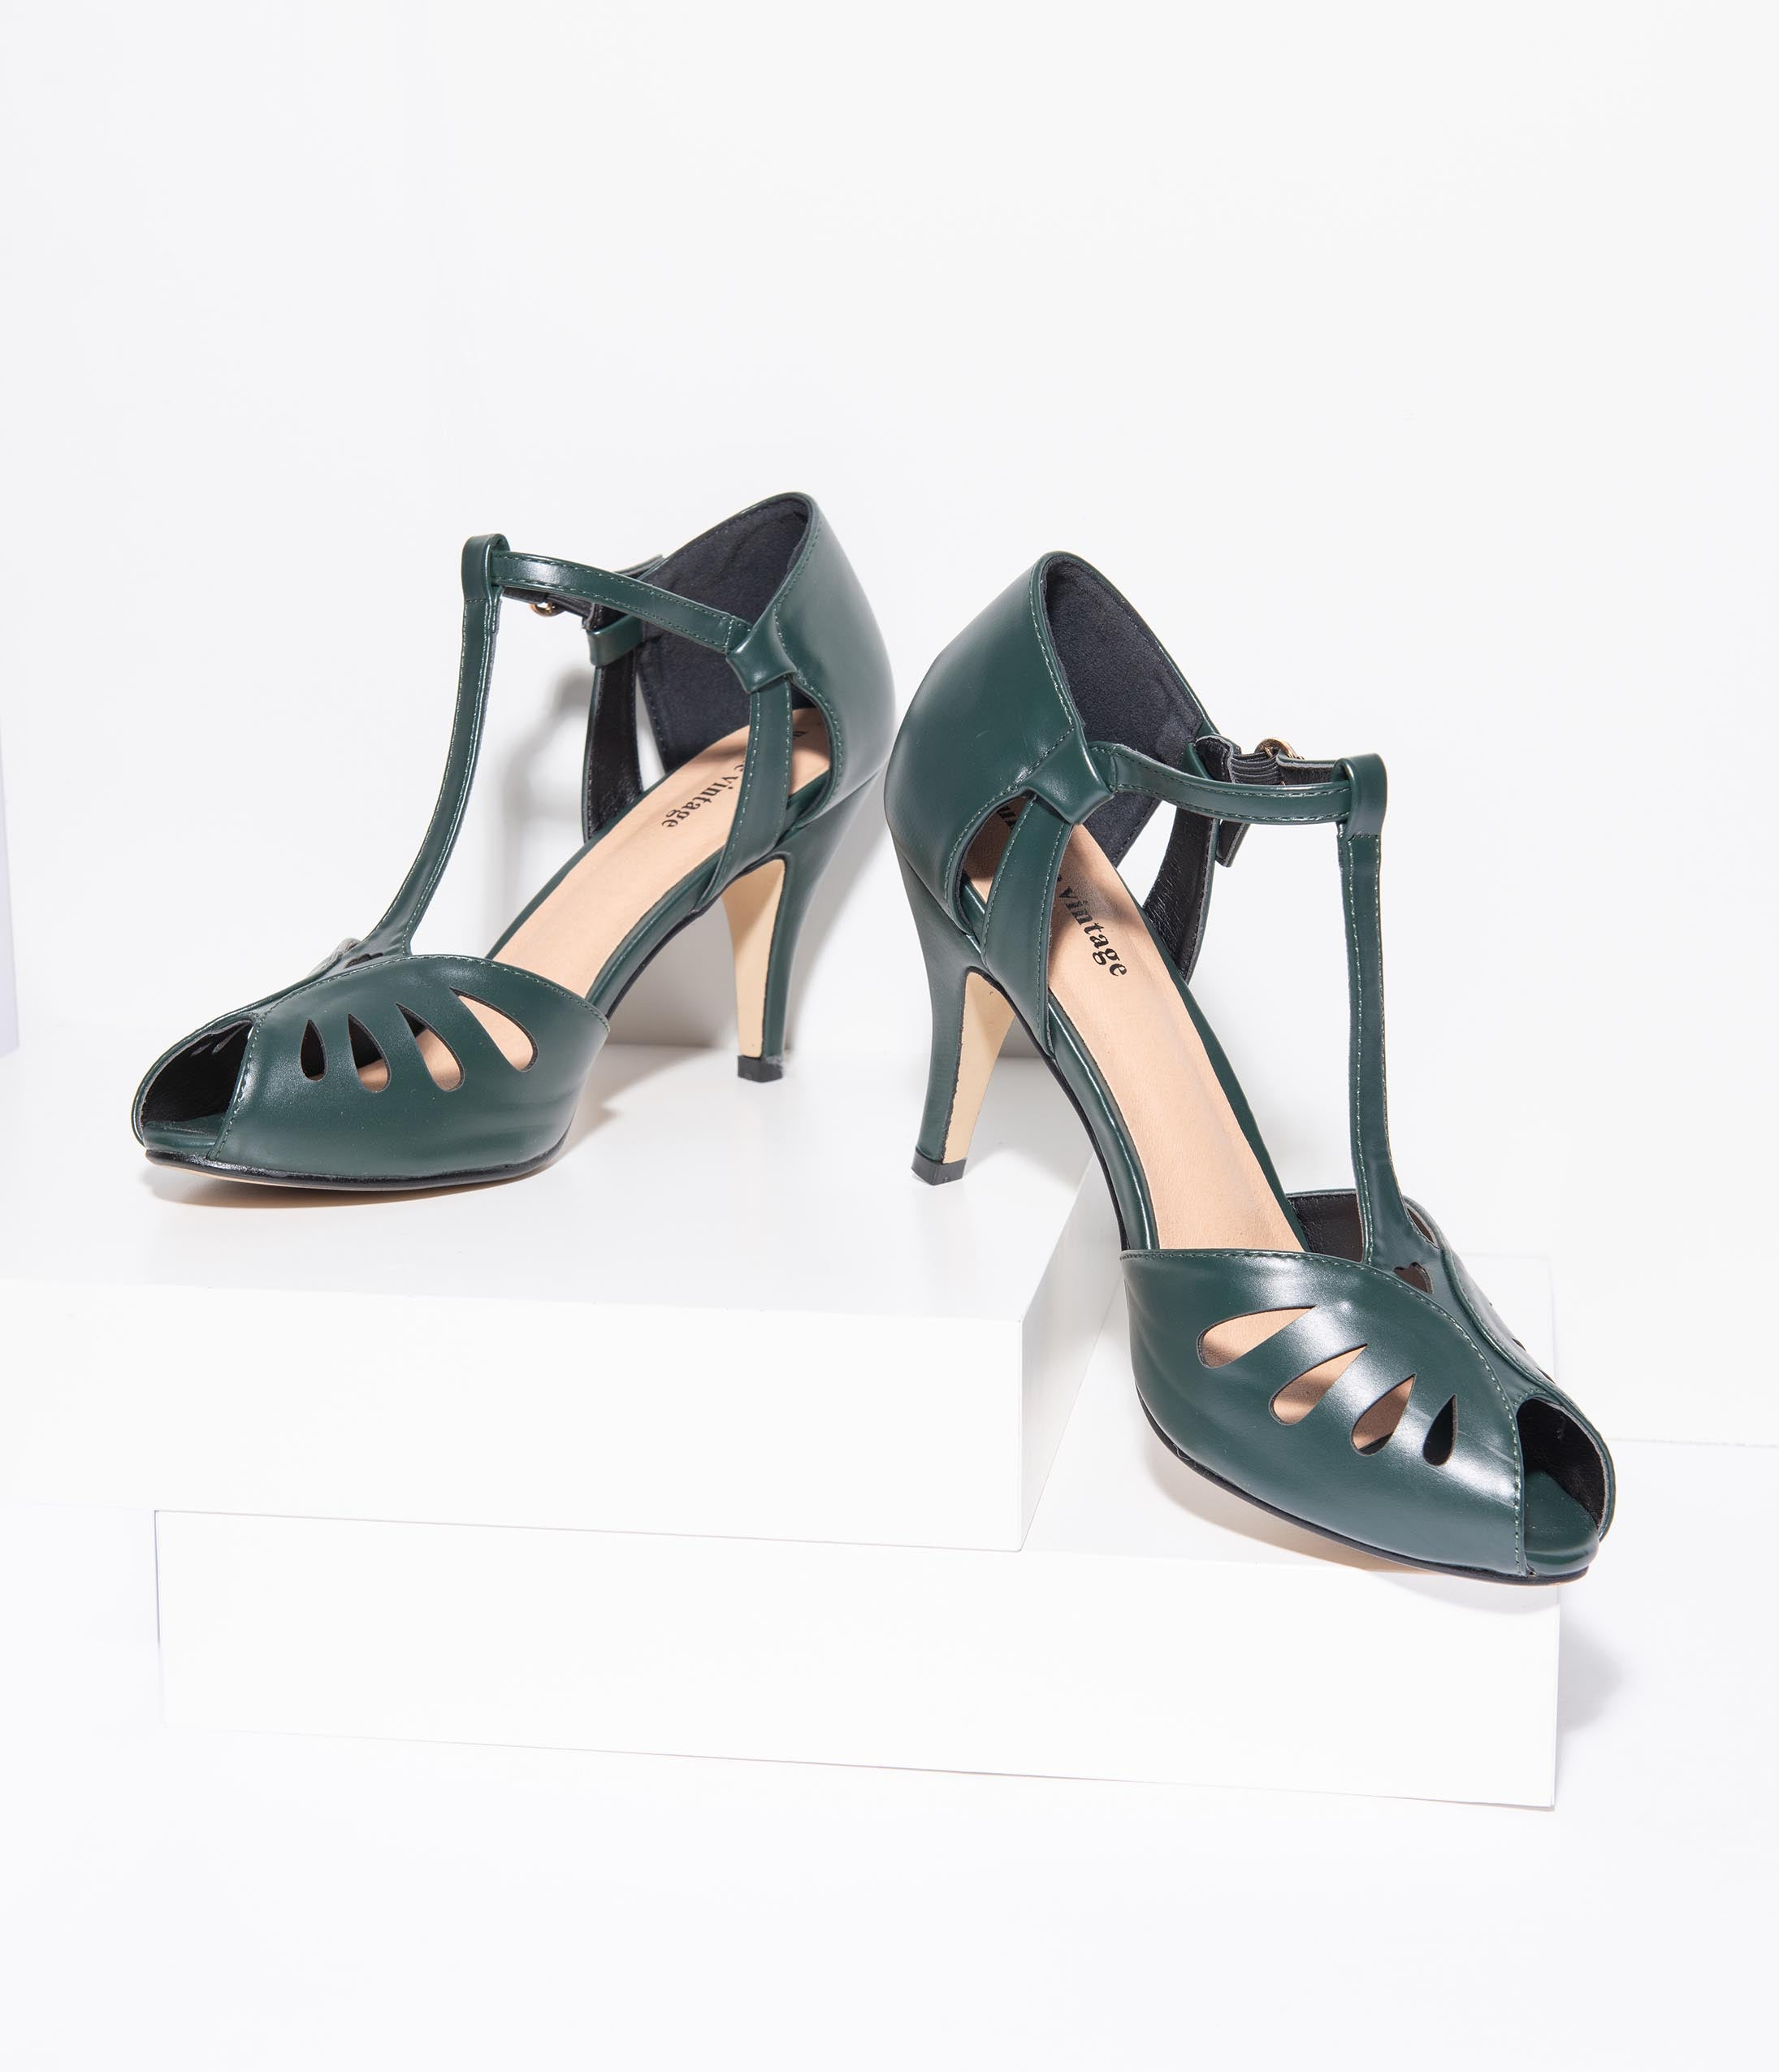 Vintage Heels, Retro Heels, Pumps, Shoes Unique Vintage Forest Green Leatherette Peep Toe T-Strap Everly Pumps $48.00 AT vintagedancer.com